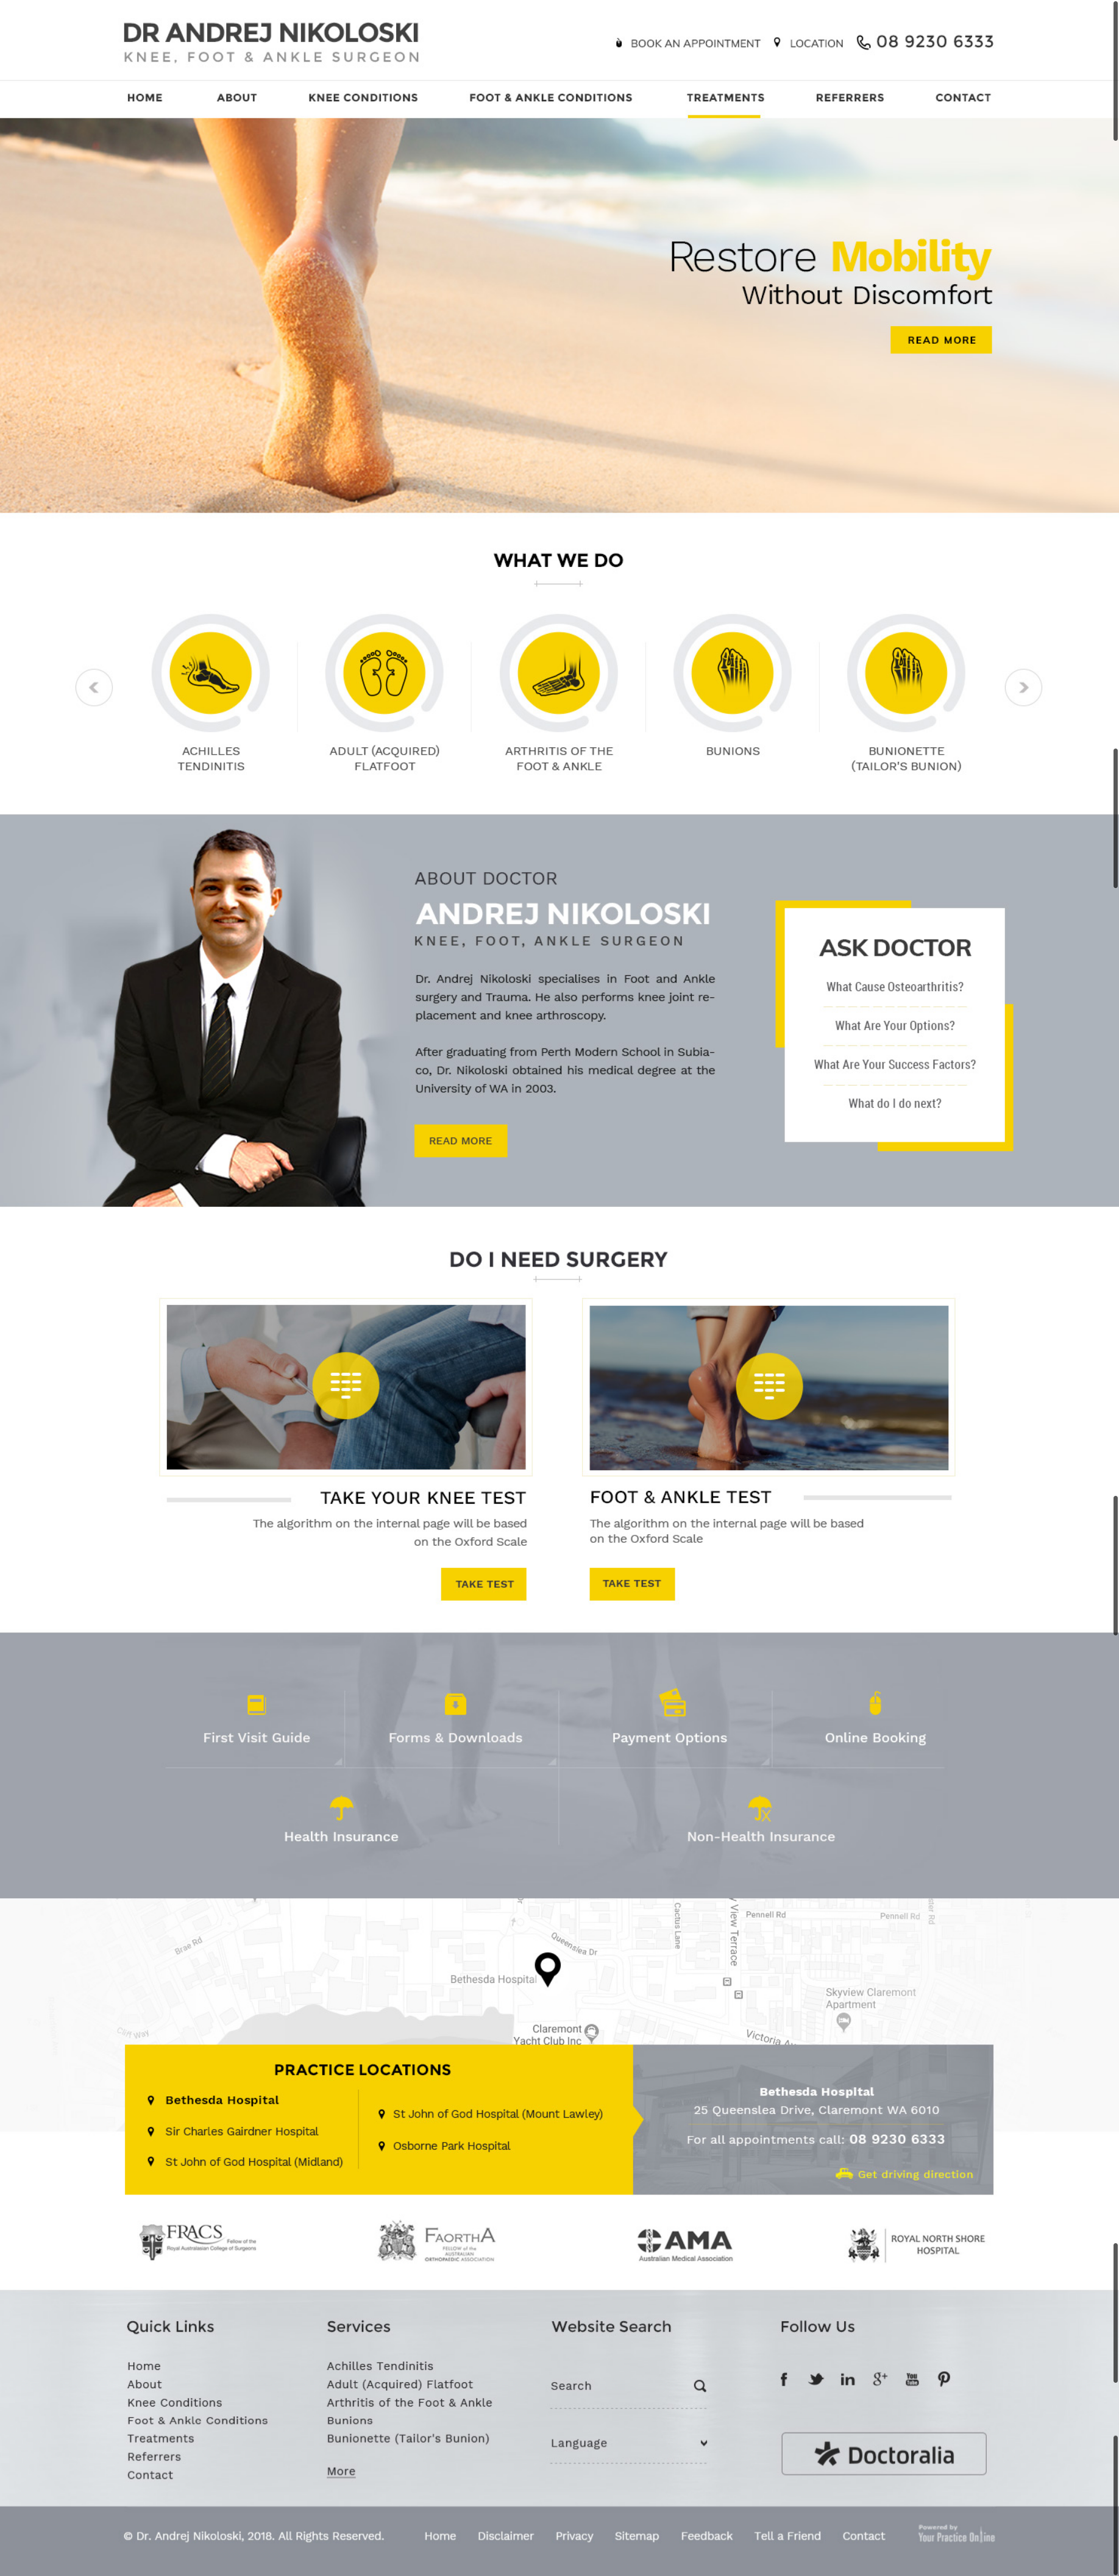 Website Design For General Practitioners Medical Websites Content Writing Medical Marketing For Doctors